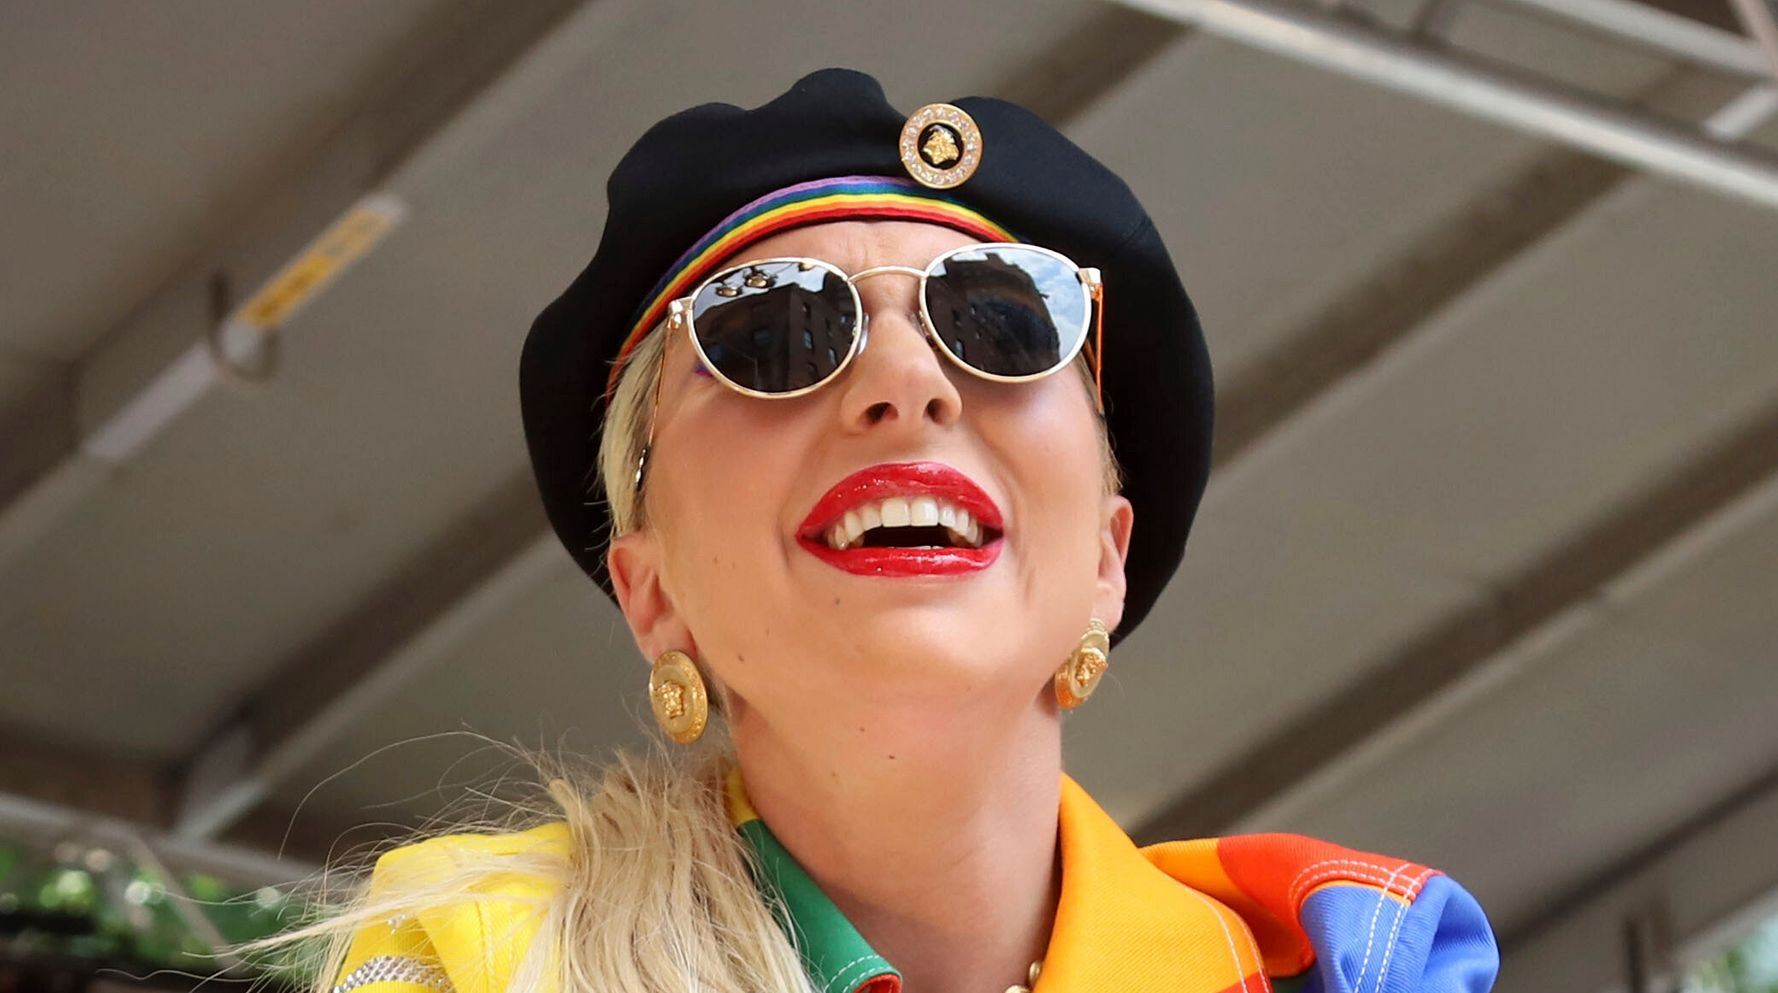 Westlake Legal Group 5d4f9e3b2200003100f4ed82 Lady Gaga Vows To Fund School Projects In El Paso, Dayton And Gilroy